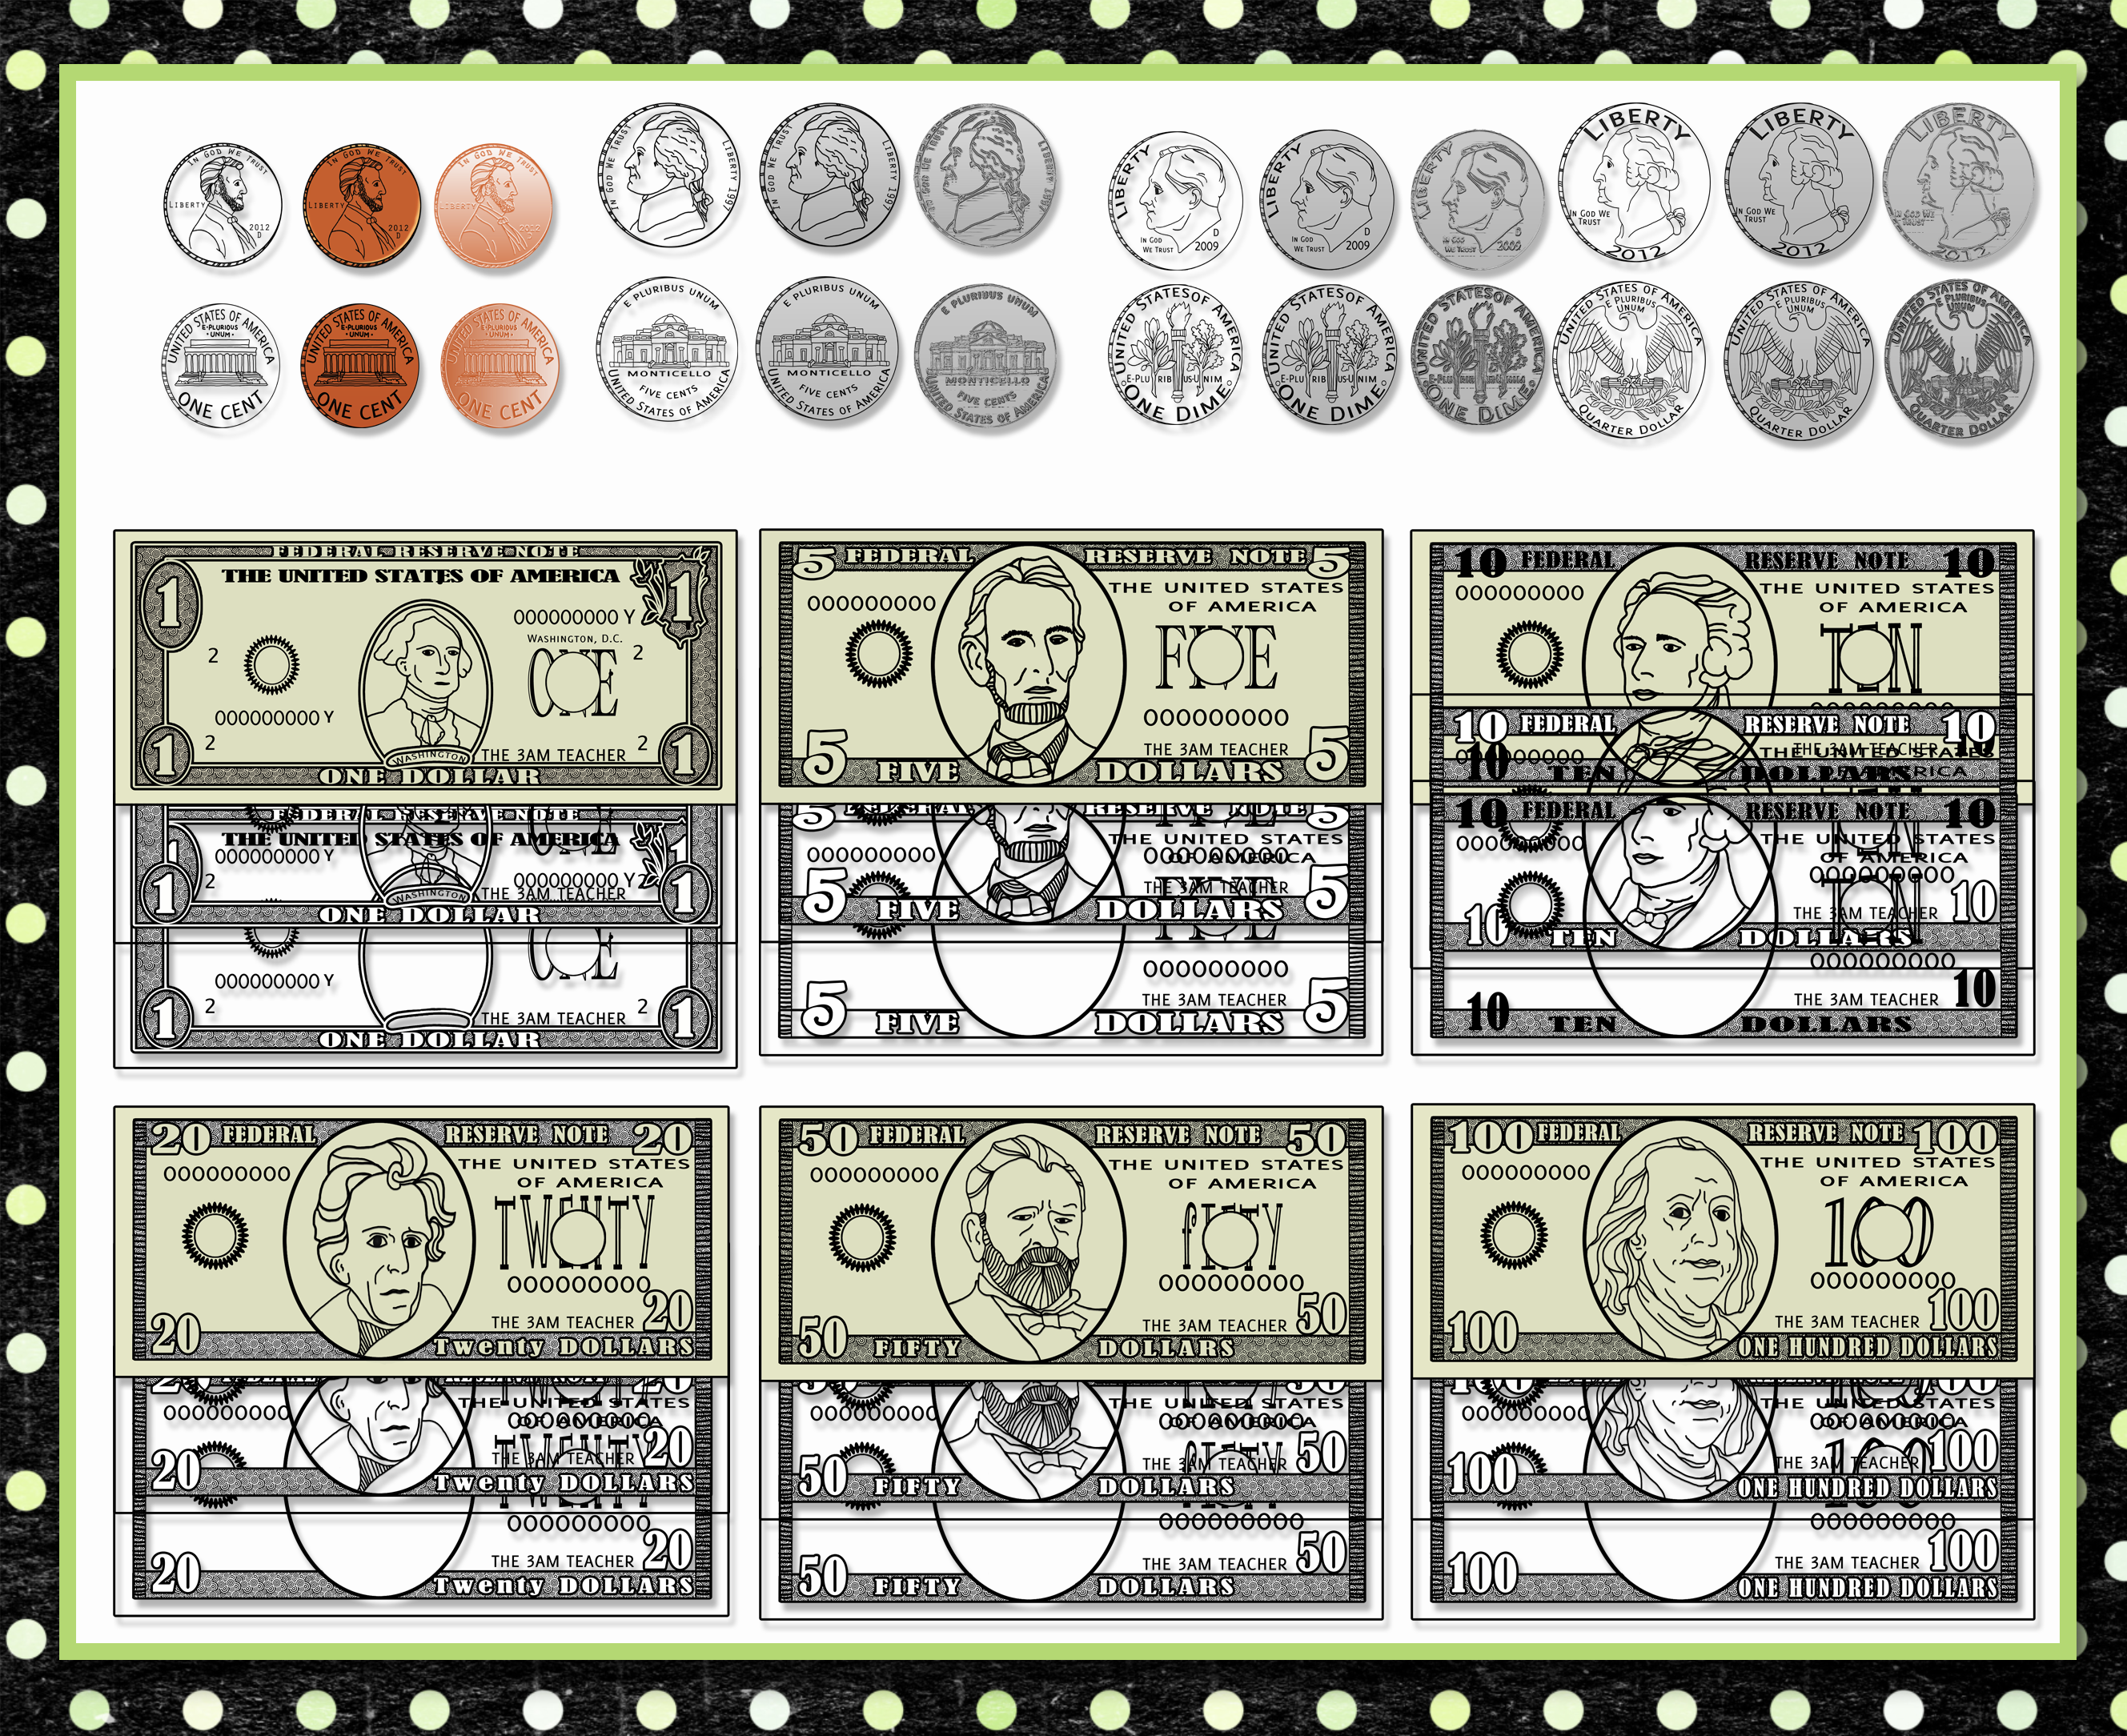 U.S. Coins And Dollars Custom Graphics! - Coins PNG For Teachers